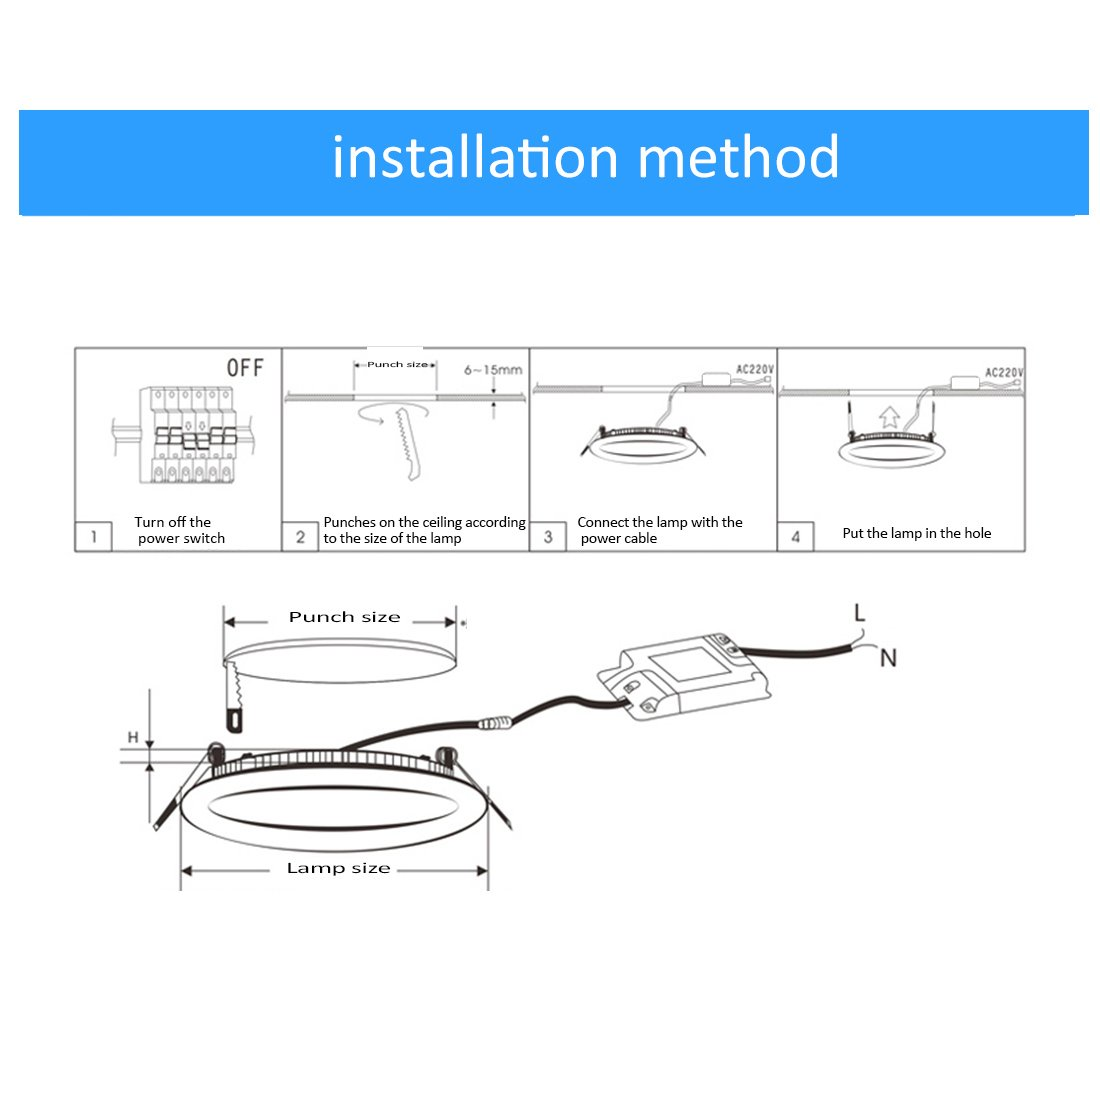 3W LED Recessed Lighting Panels Light Ceiling 6000k 180LM Ultra Slim Flat Recessed Light Fixtures for Bathroom Kitchen Dining Room Corridor Conference Room Office Gazebo Office Store TXYDLED